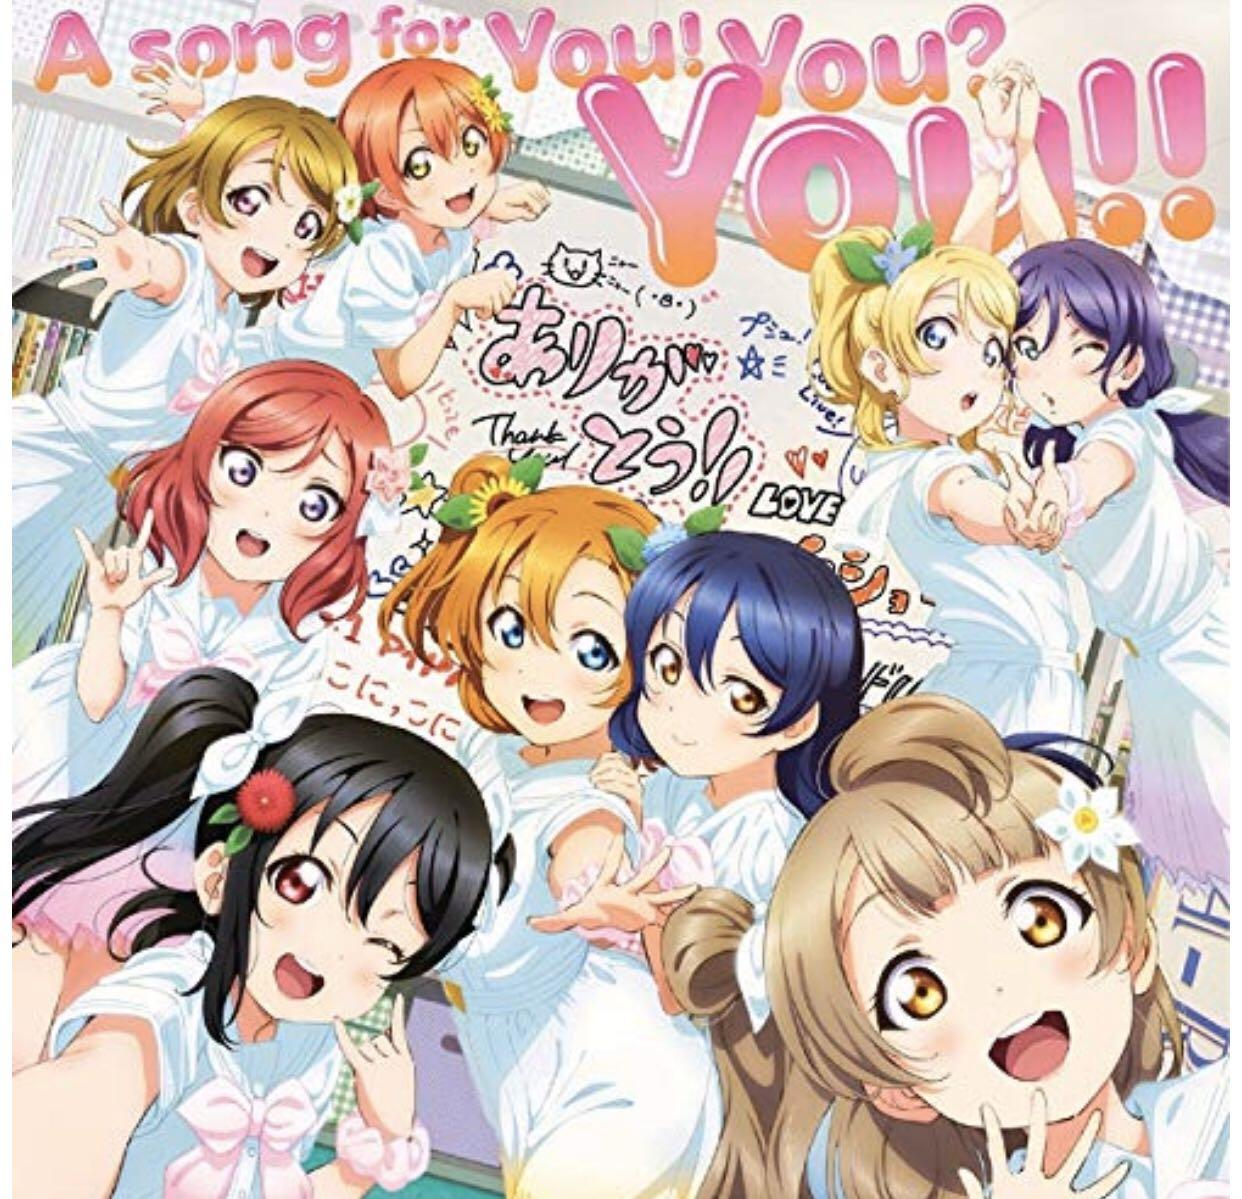 Lovelive 新歌!  A song for You! You? You!! cd/bd 預訂 代購